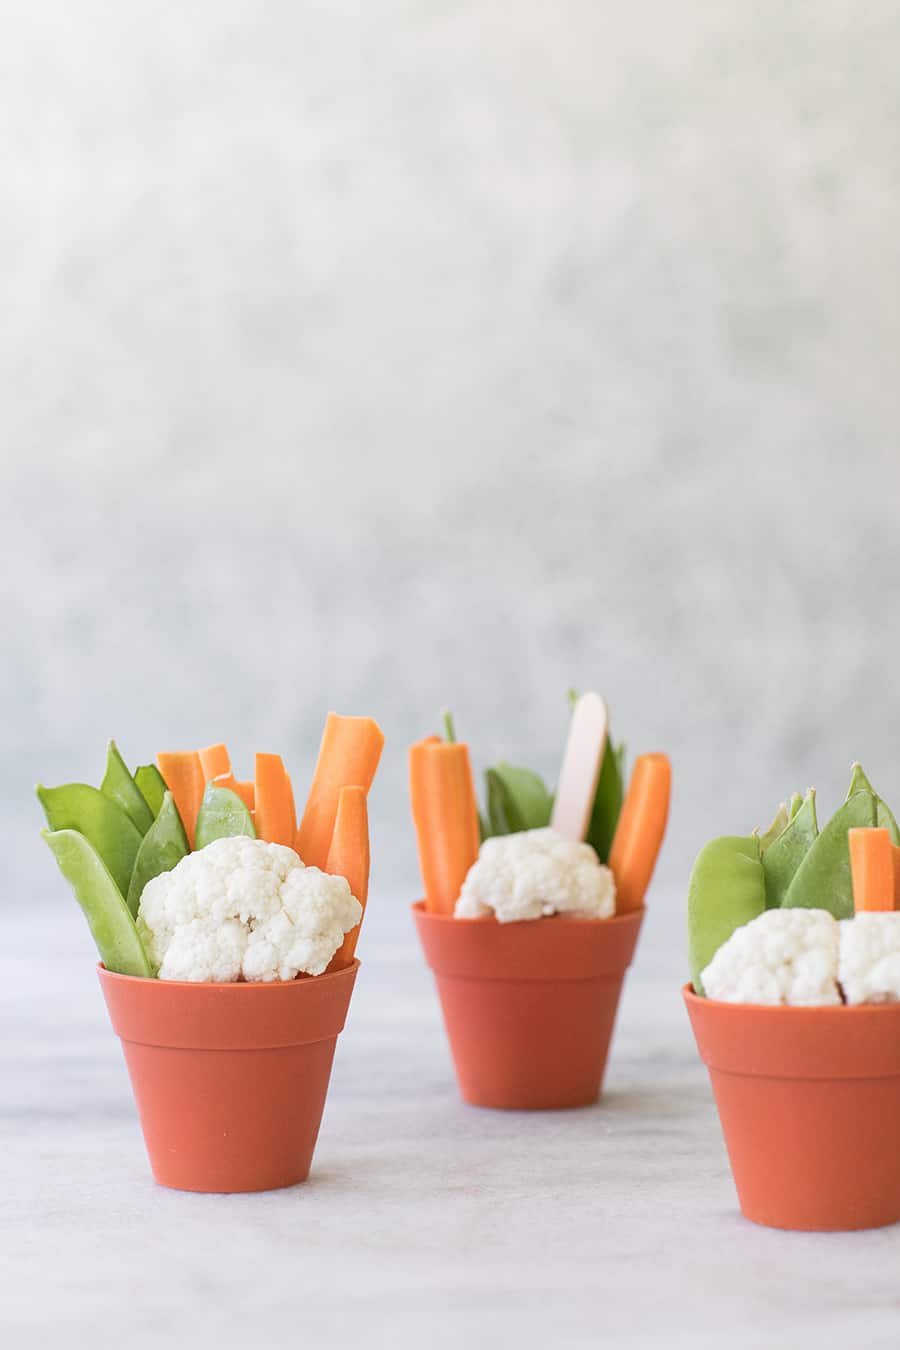 Cut vegetables in a silicone flower pot with hummus on the bottom.